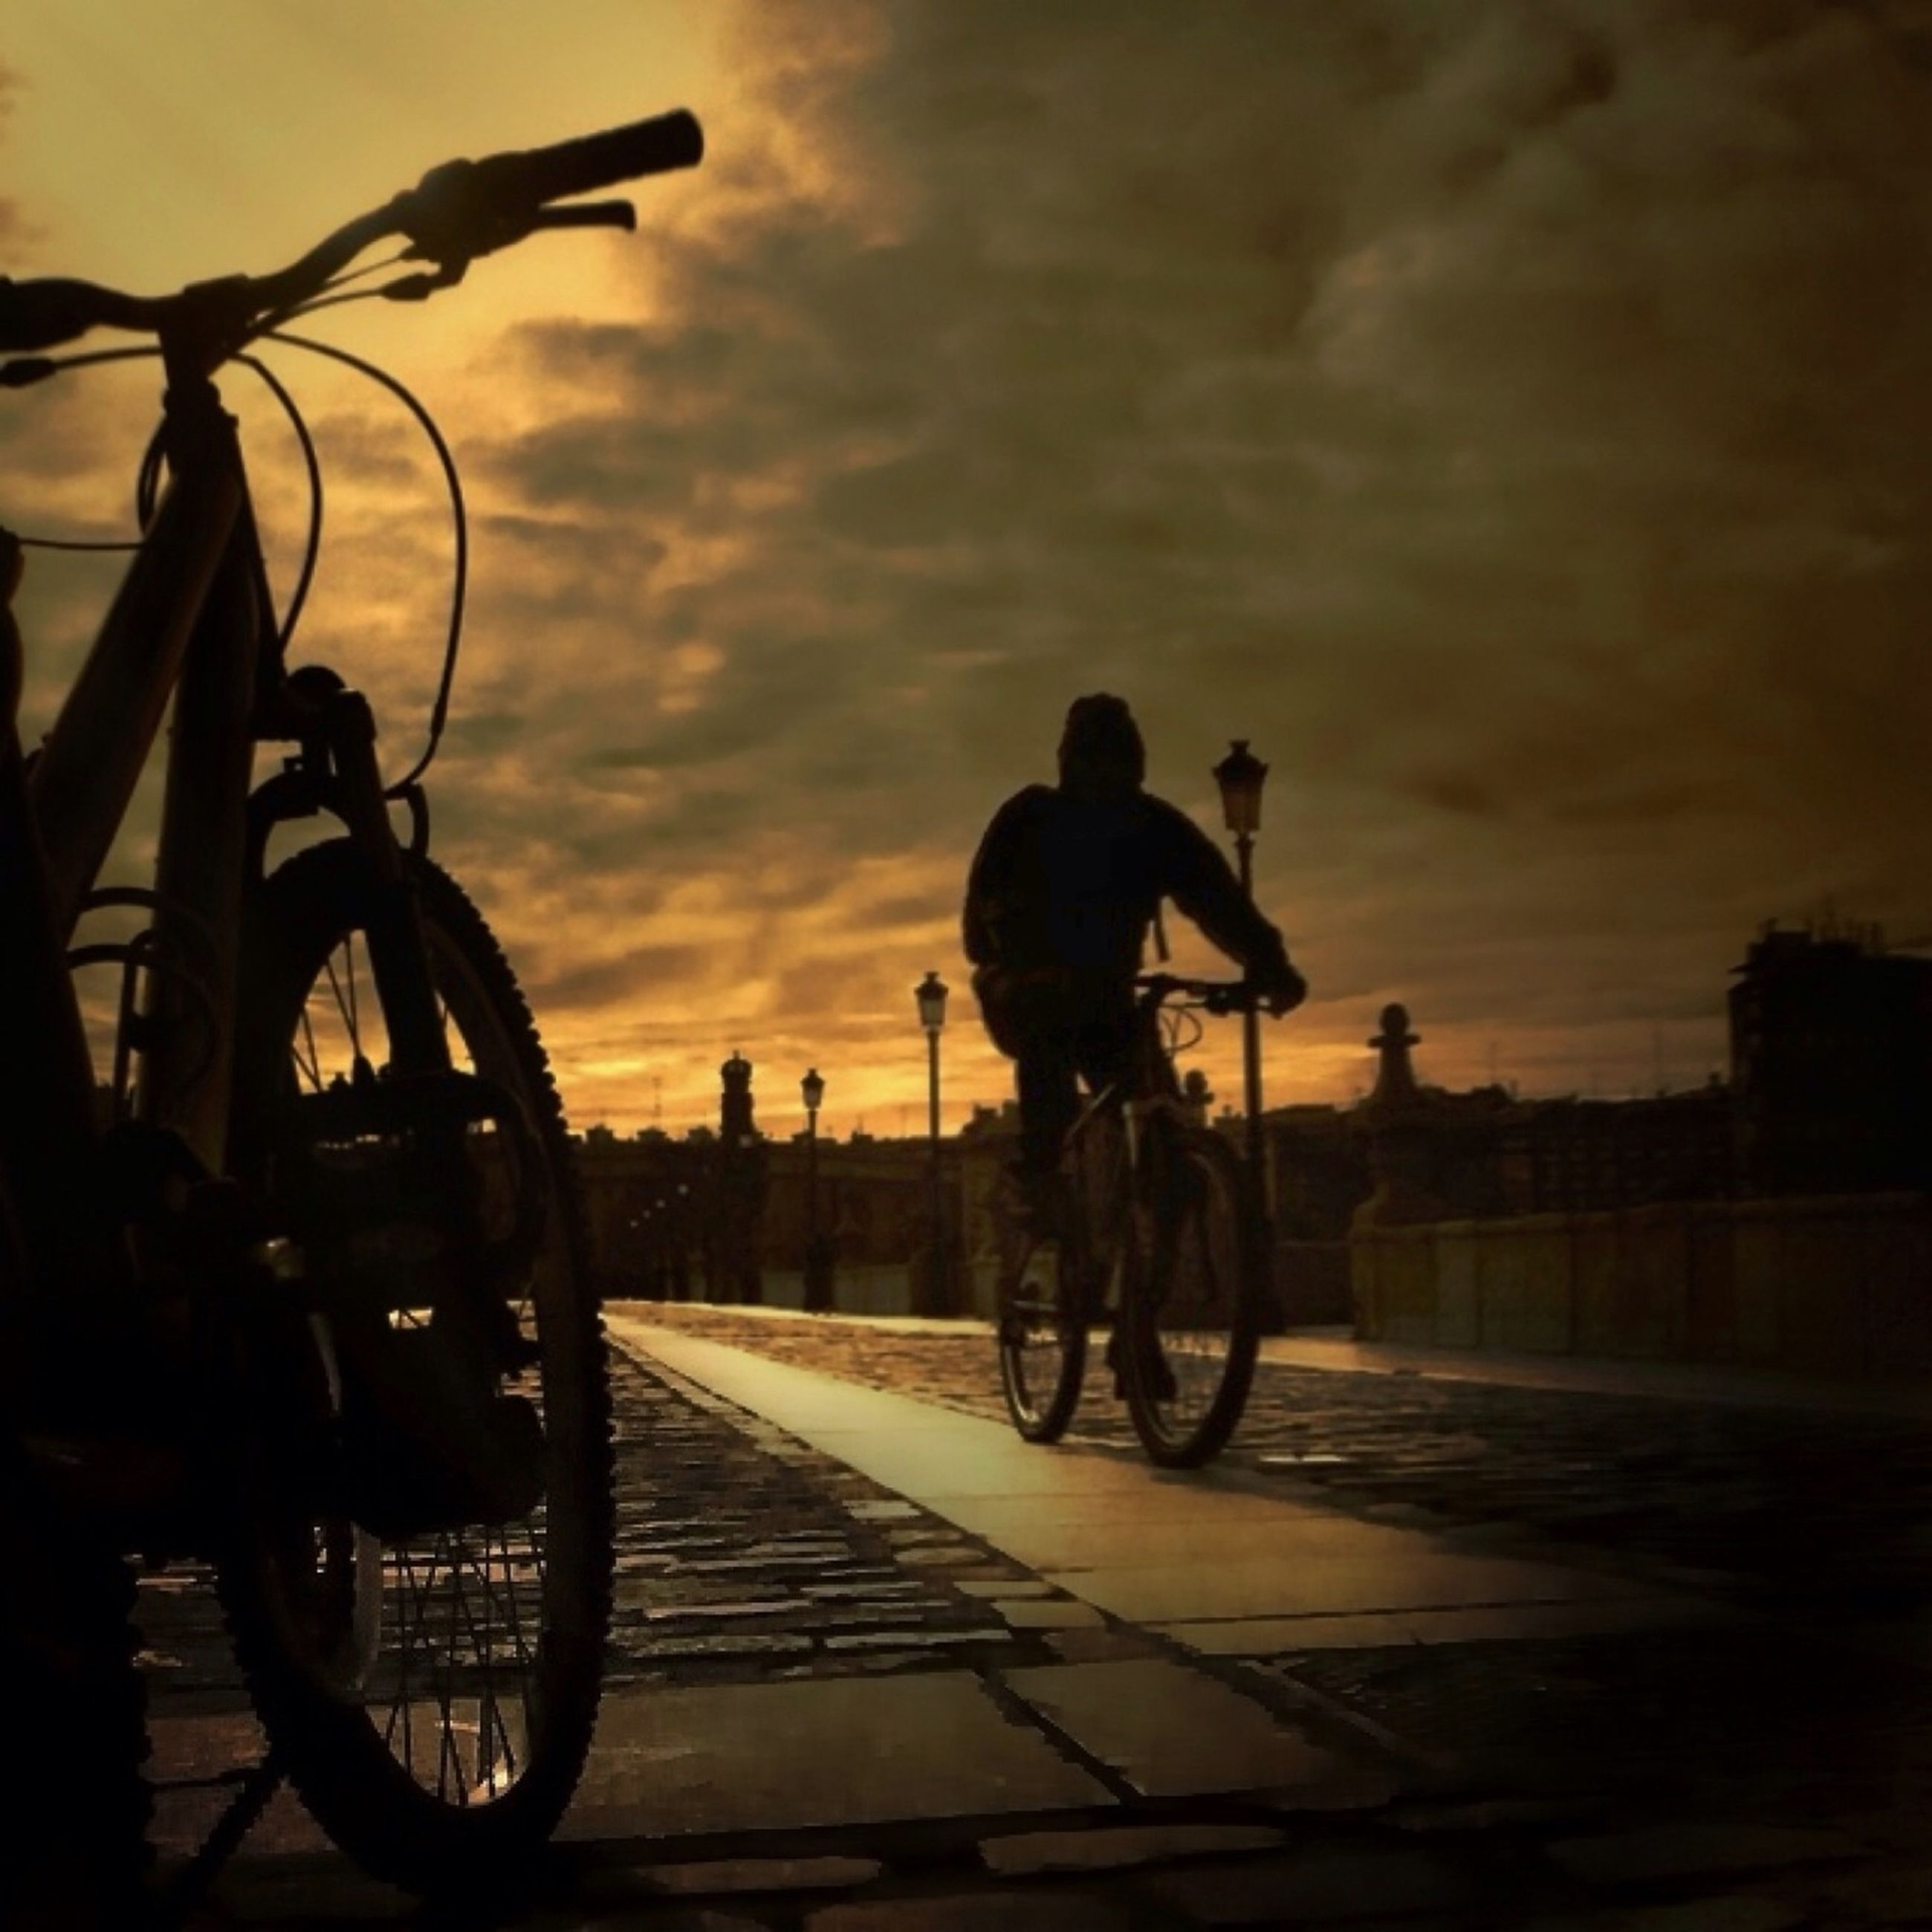 transportation, bicycle, mode of transport, land vehicle, riding, men, sunset, silhouette, cycling, sky, lifestyles, road, street, on the move, full length, leisure activity, cloud - sky, travel